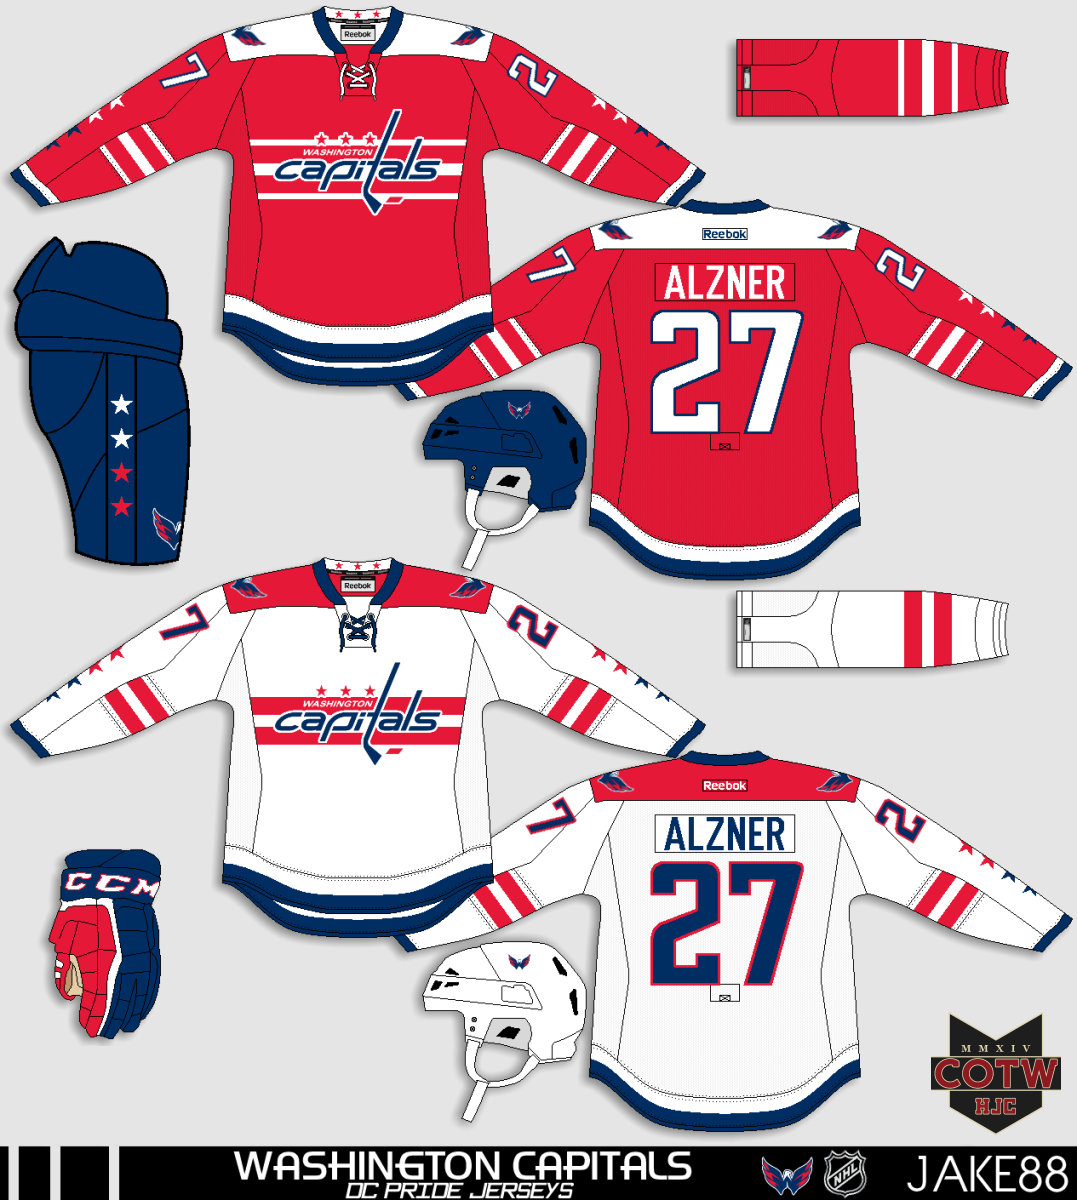 6f4987b8928 The winner of the COTW vote for August 25-31 was Jake88 s Washington  Capitals concept!